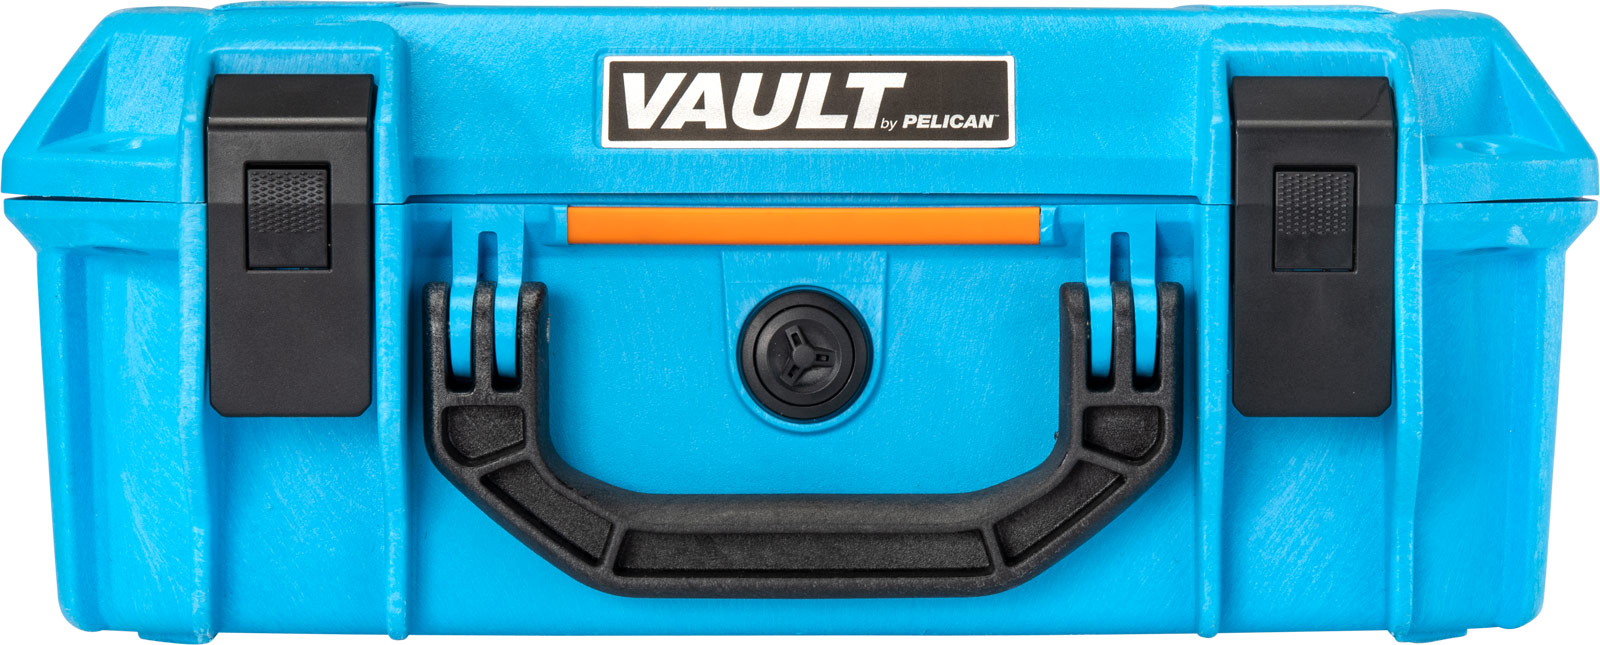 pelican blue vault color cases v200c case